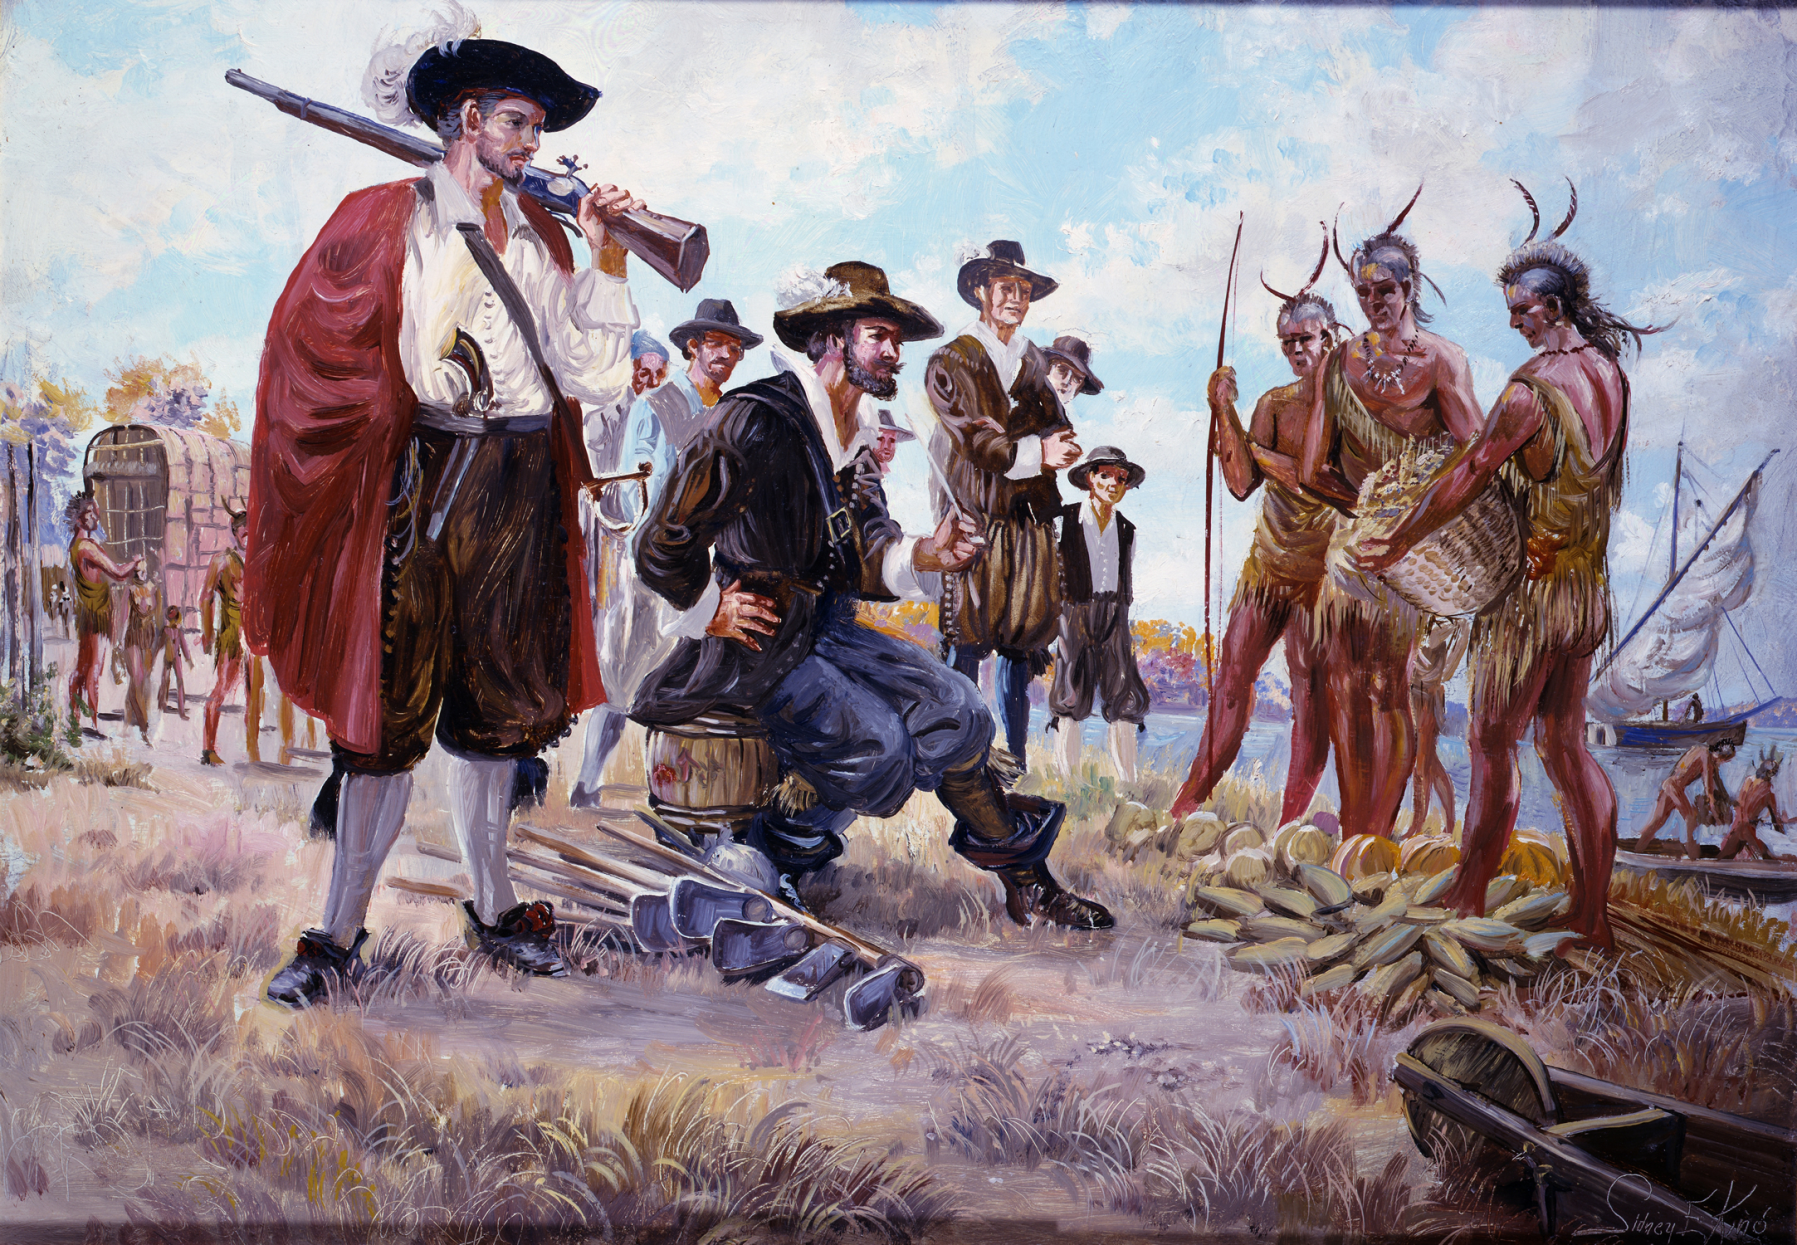 american indians and european colonists The assimilation of american indians into american society was a process that took upwards of 300 years at first, when the european colonists reached american shores, they had no need for more than limited contact with the indigenous natives of the land.